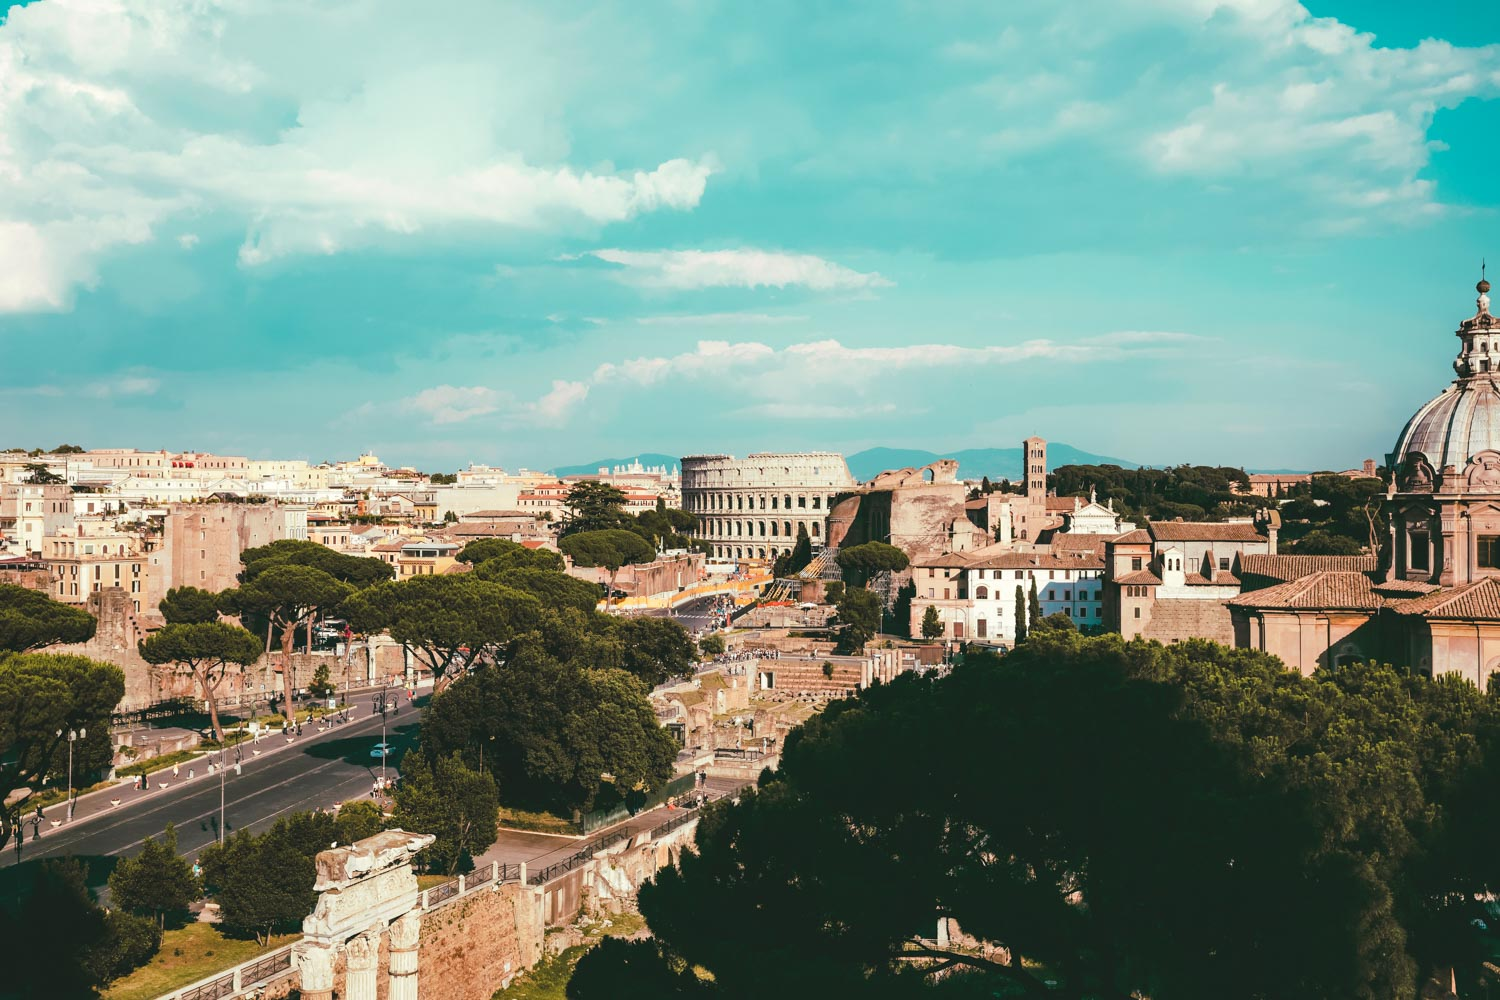 Colosseum views one of the best views in Rome Italy